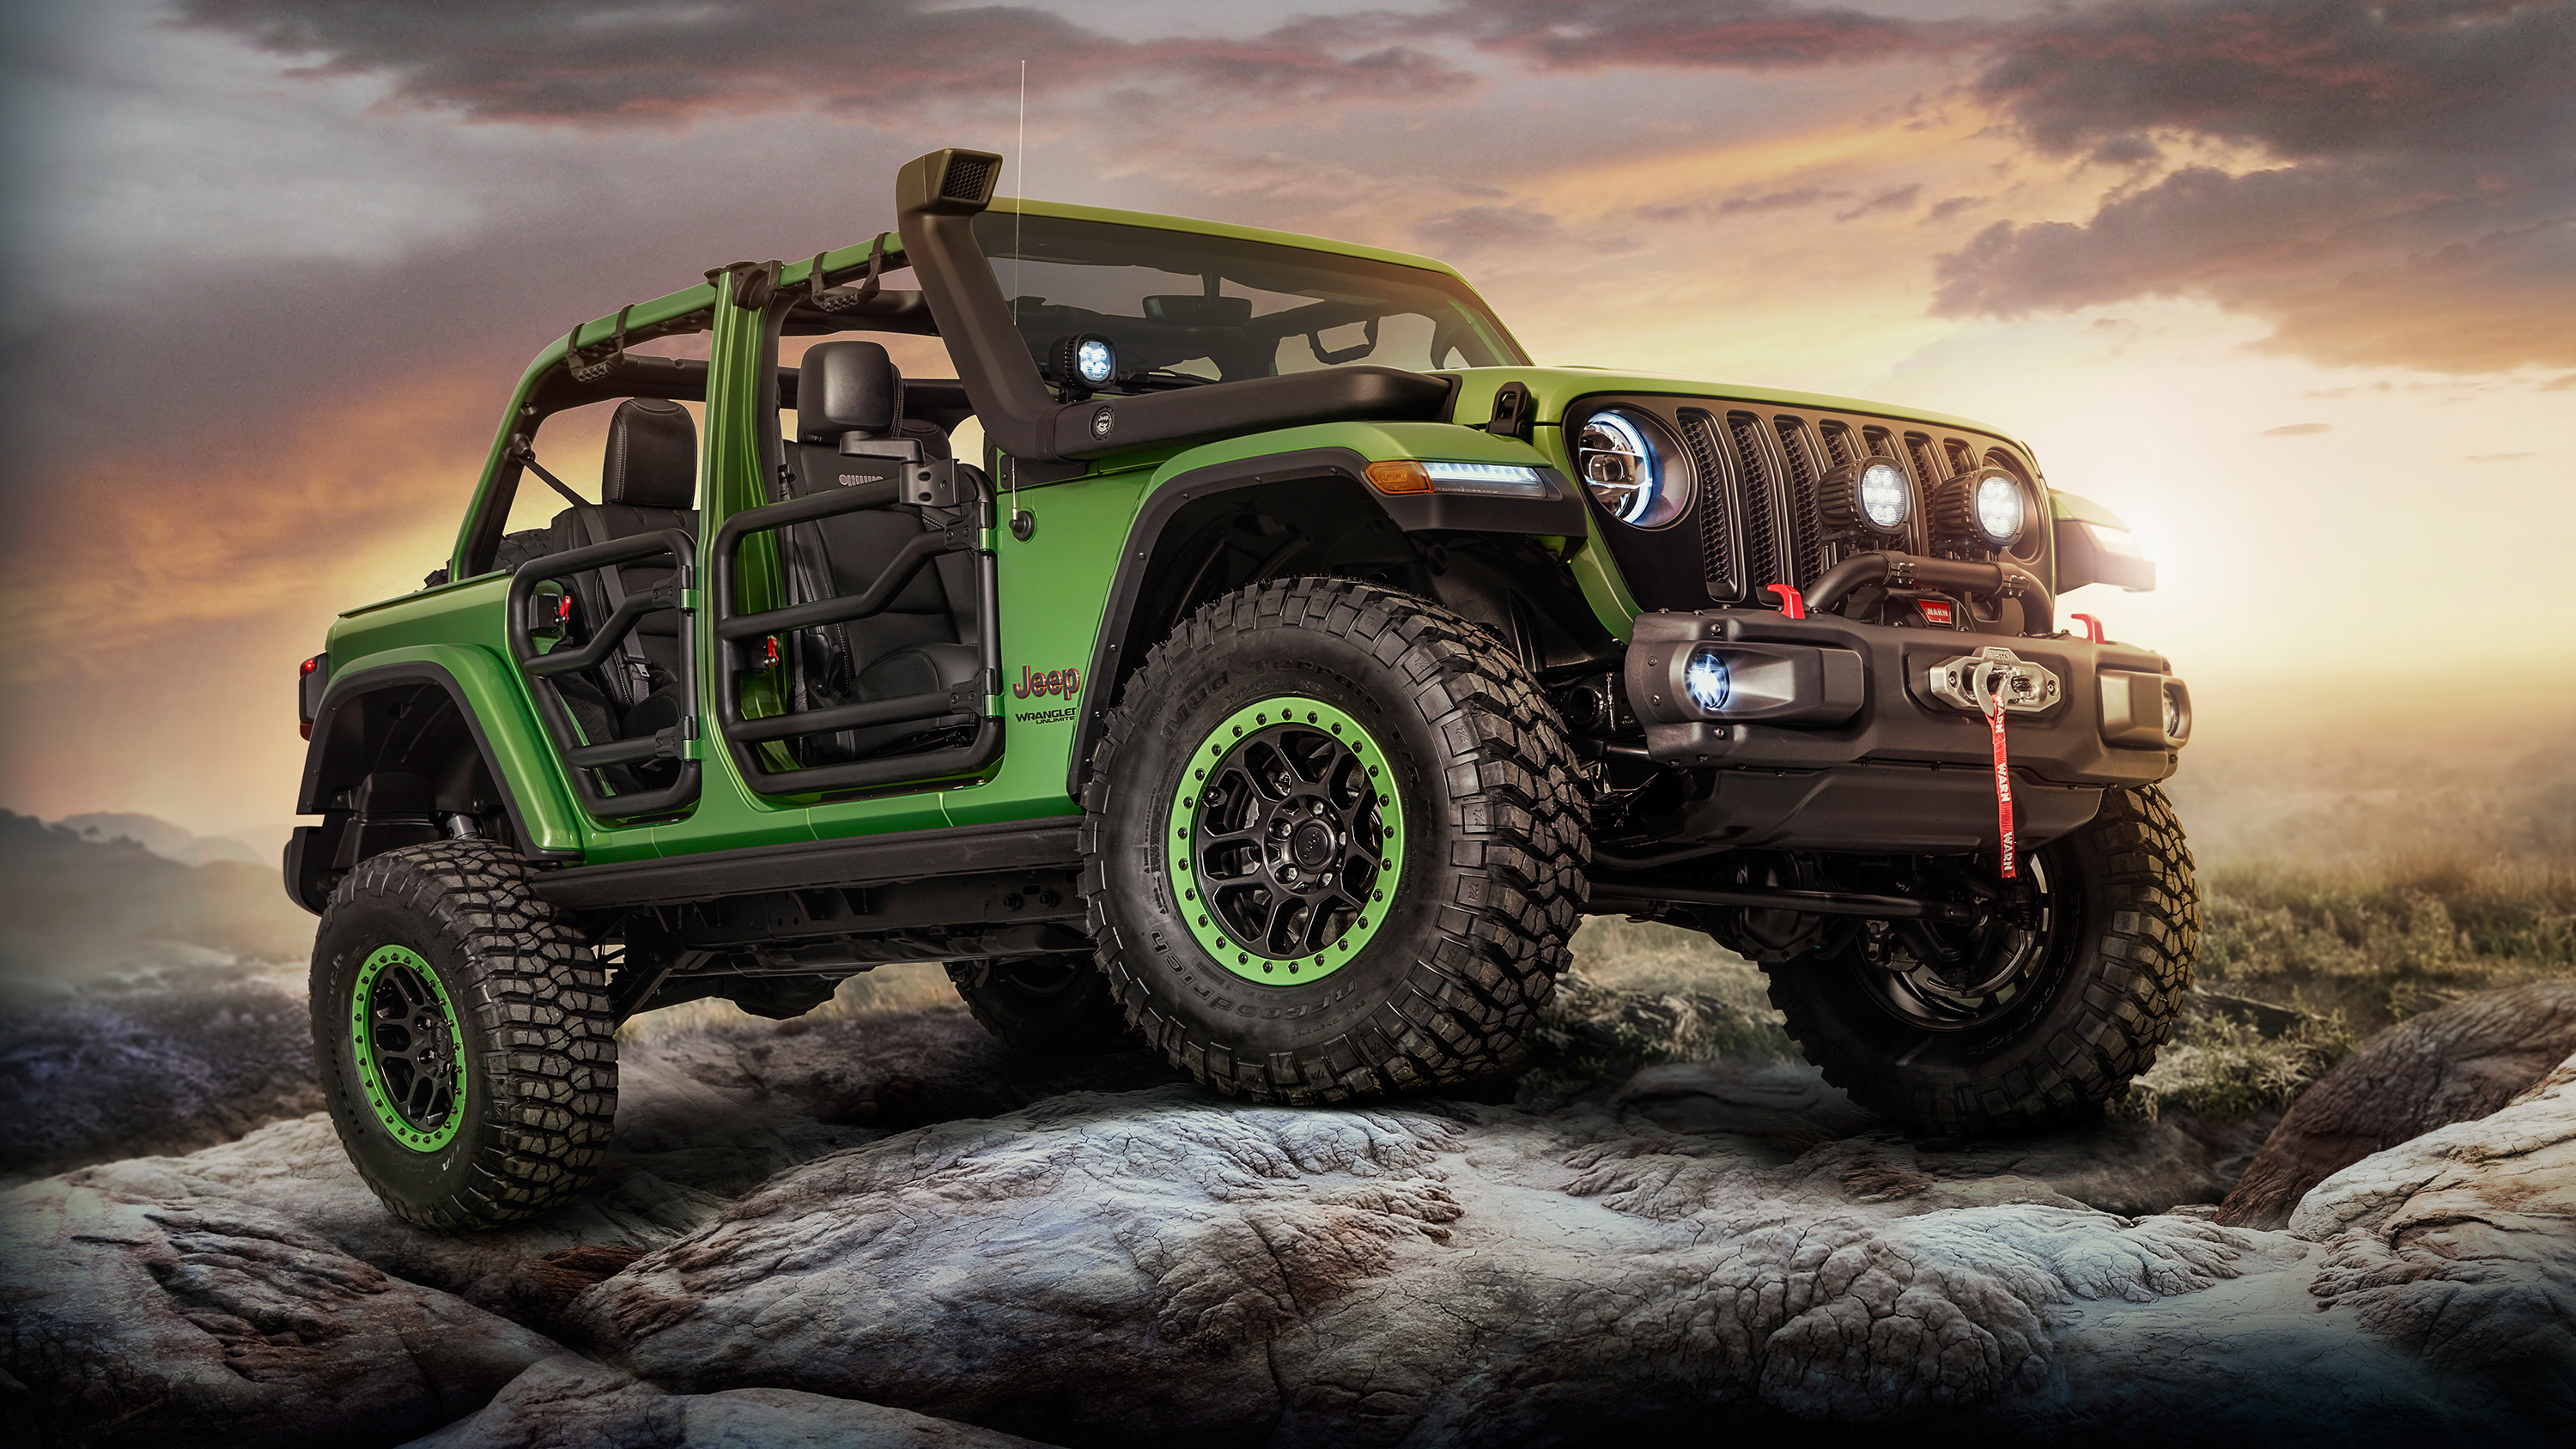 2018 Jeep Wrangler Unlimited Rubicon Moparized Wallpaper